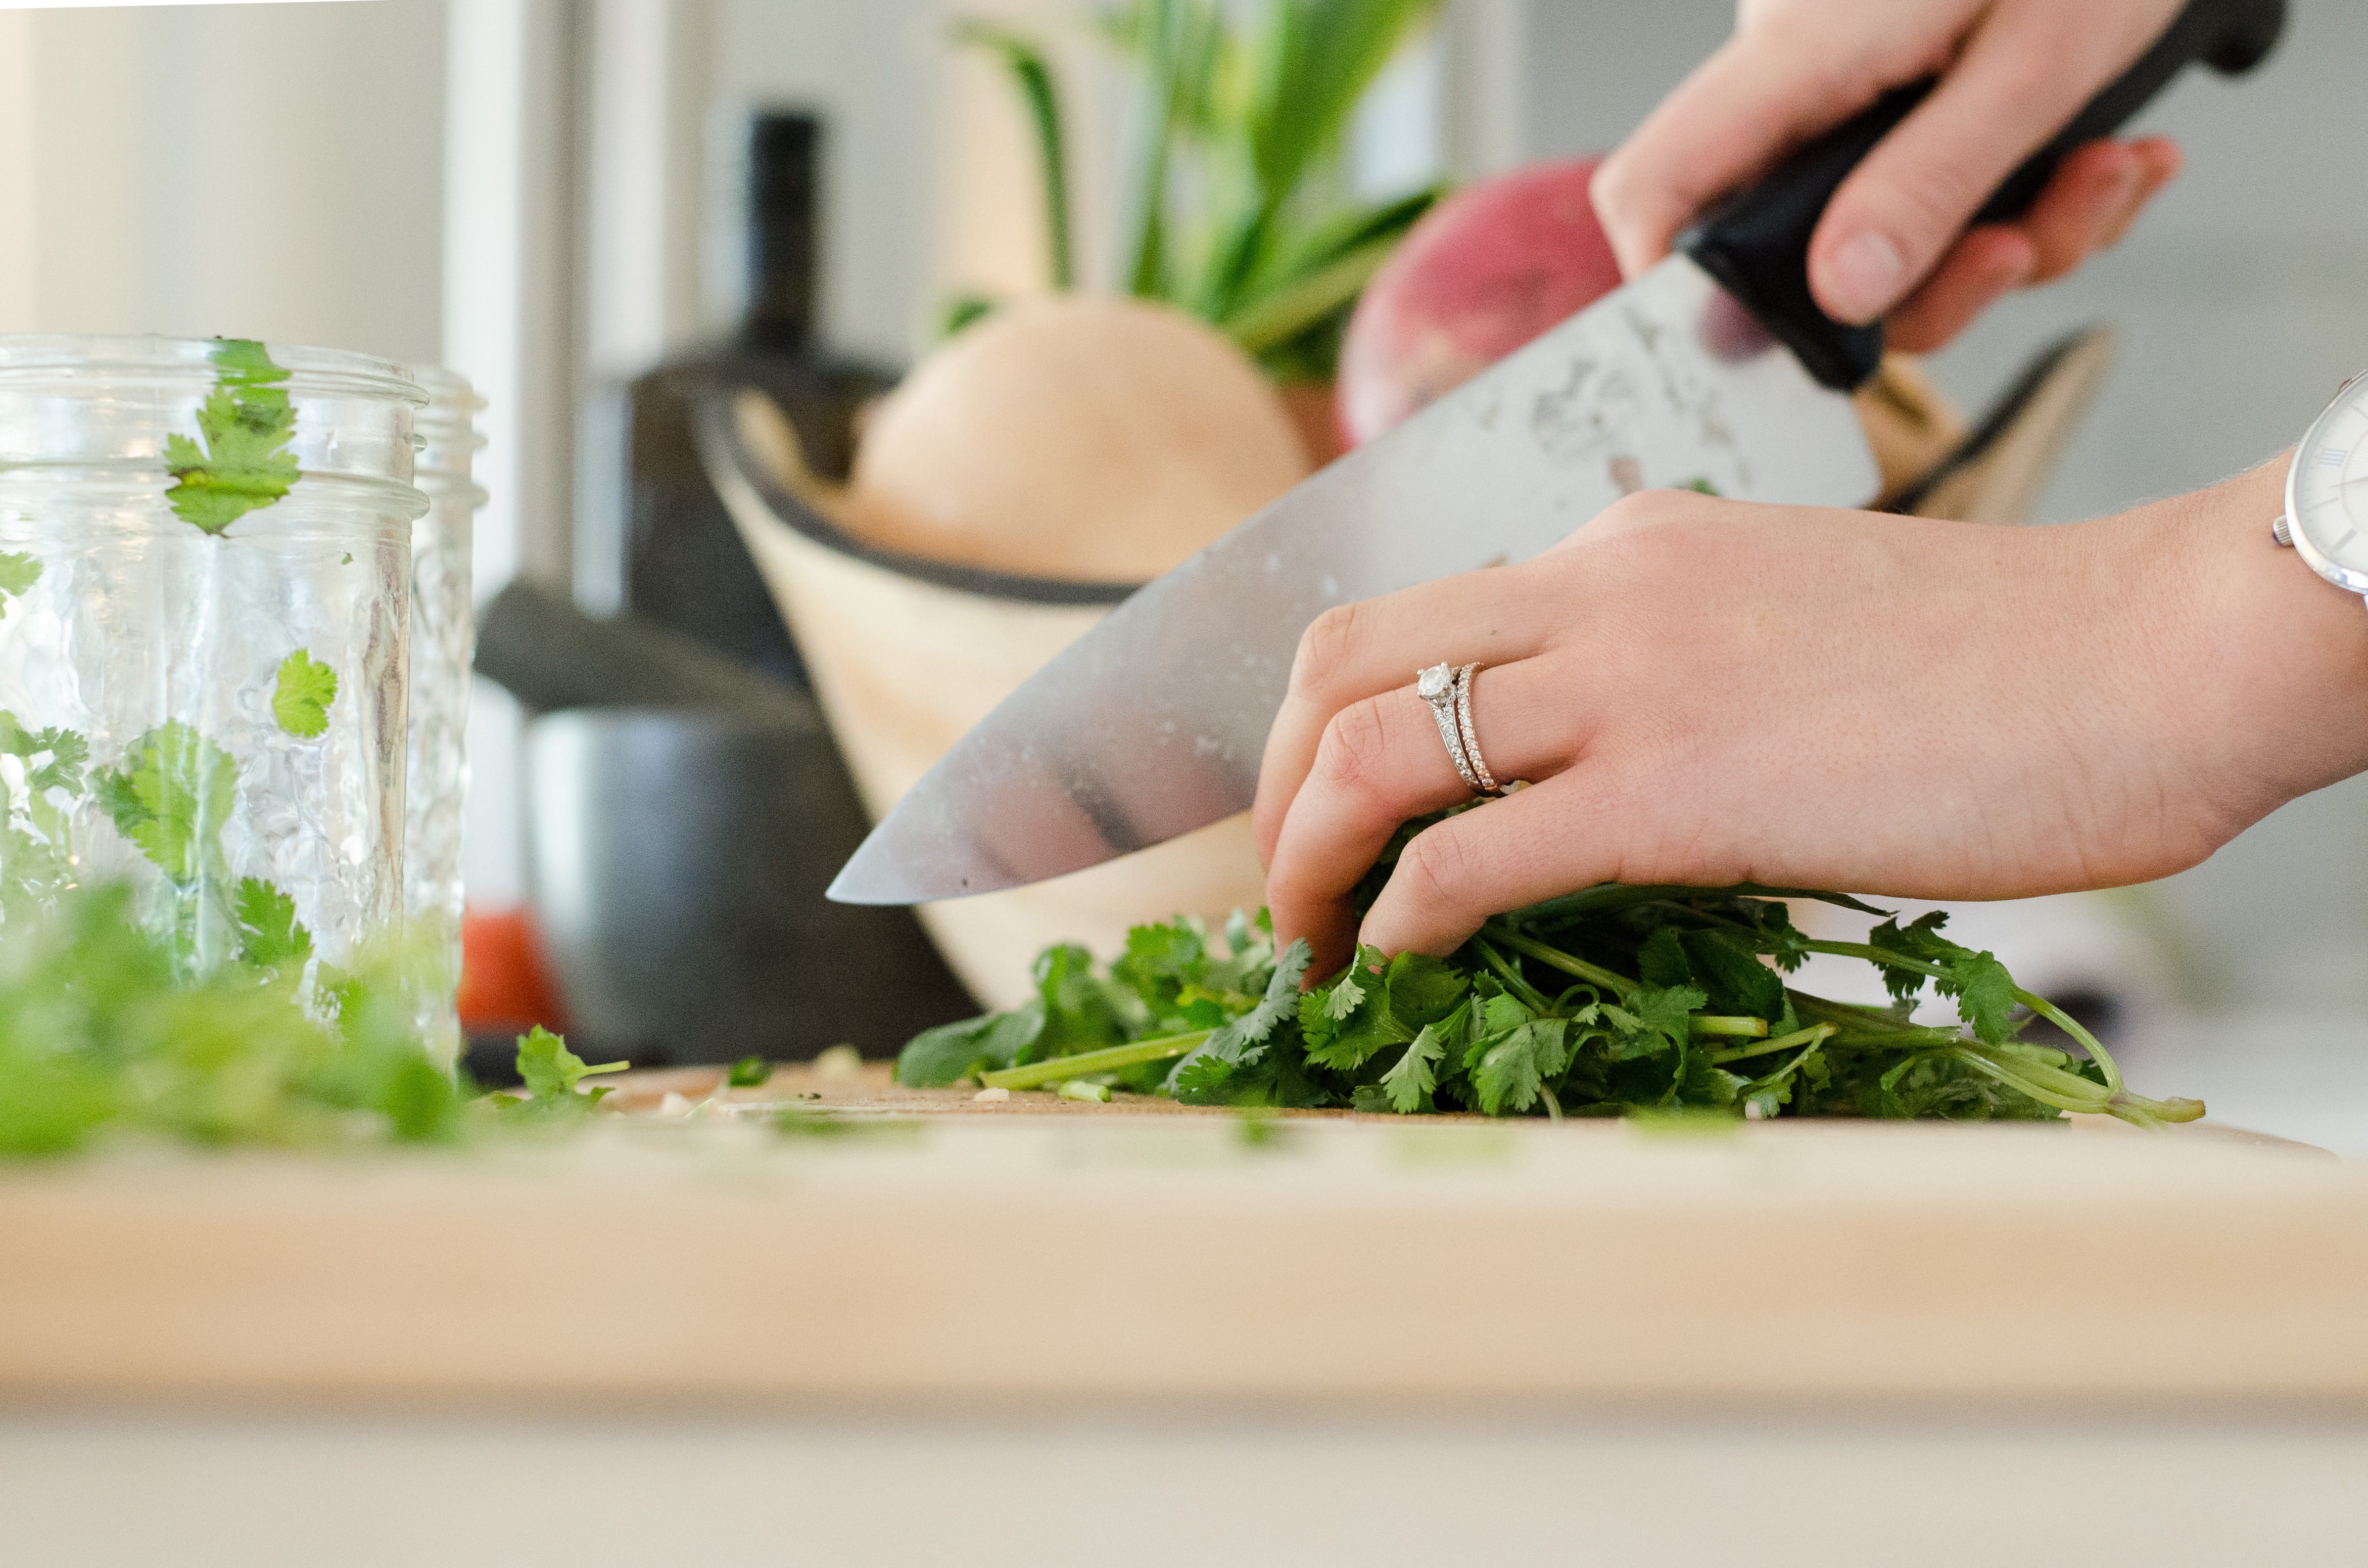 A close up photo of someone's hands as they chop up coriander.